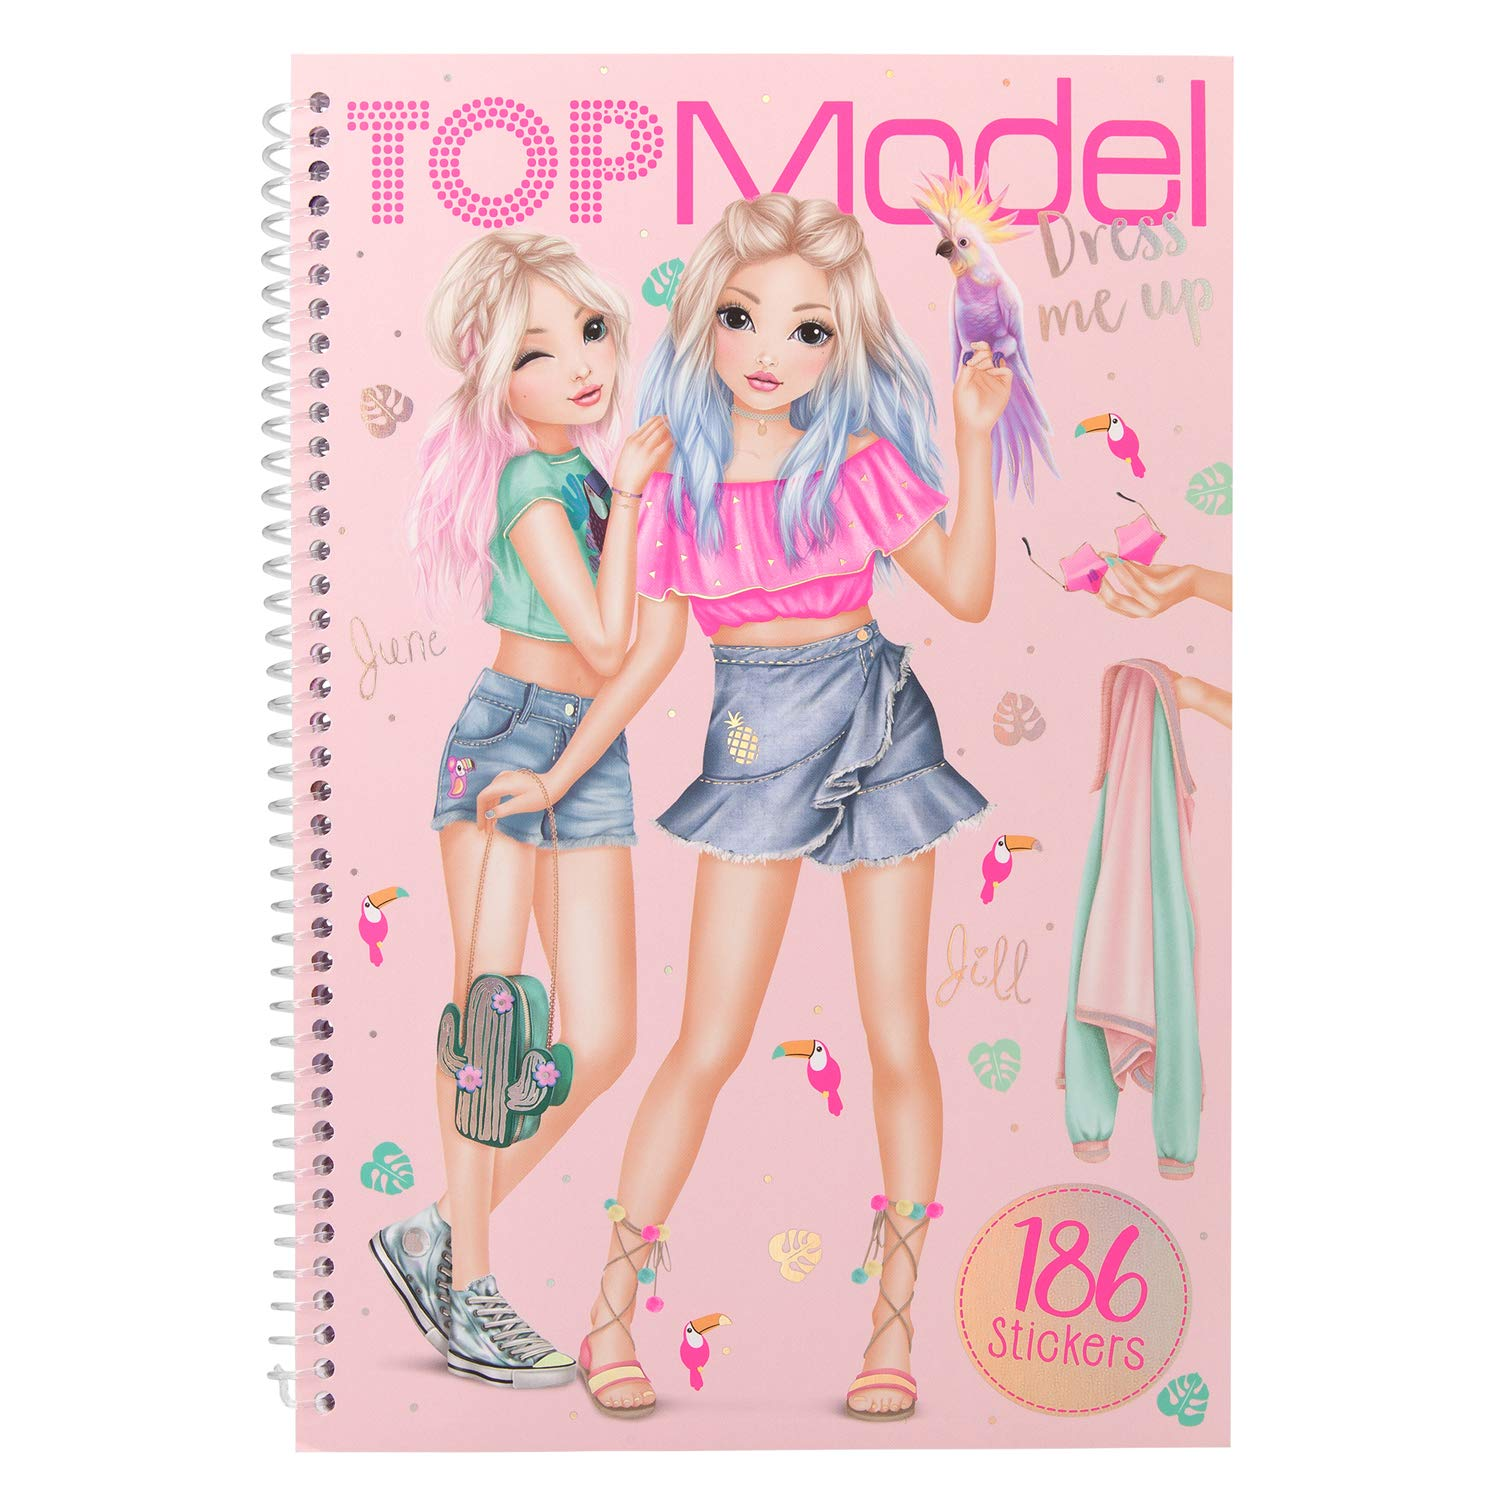 Top Model Stickers.Depesche 10576 Colouring Book With Stickers Topmodel Dress